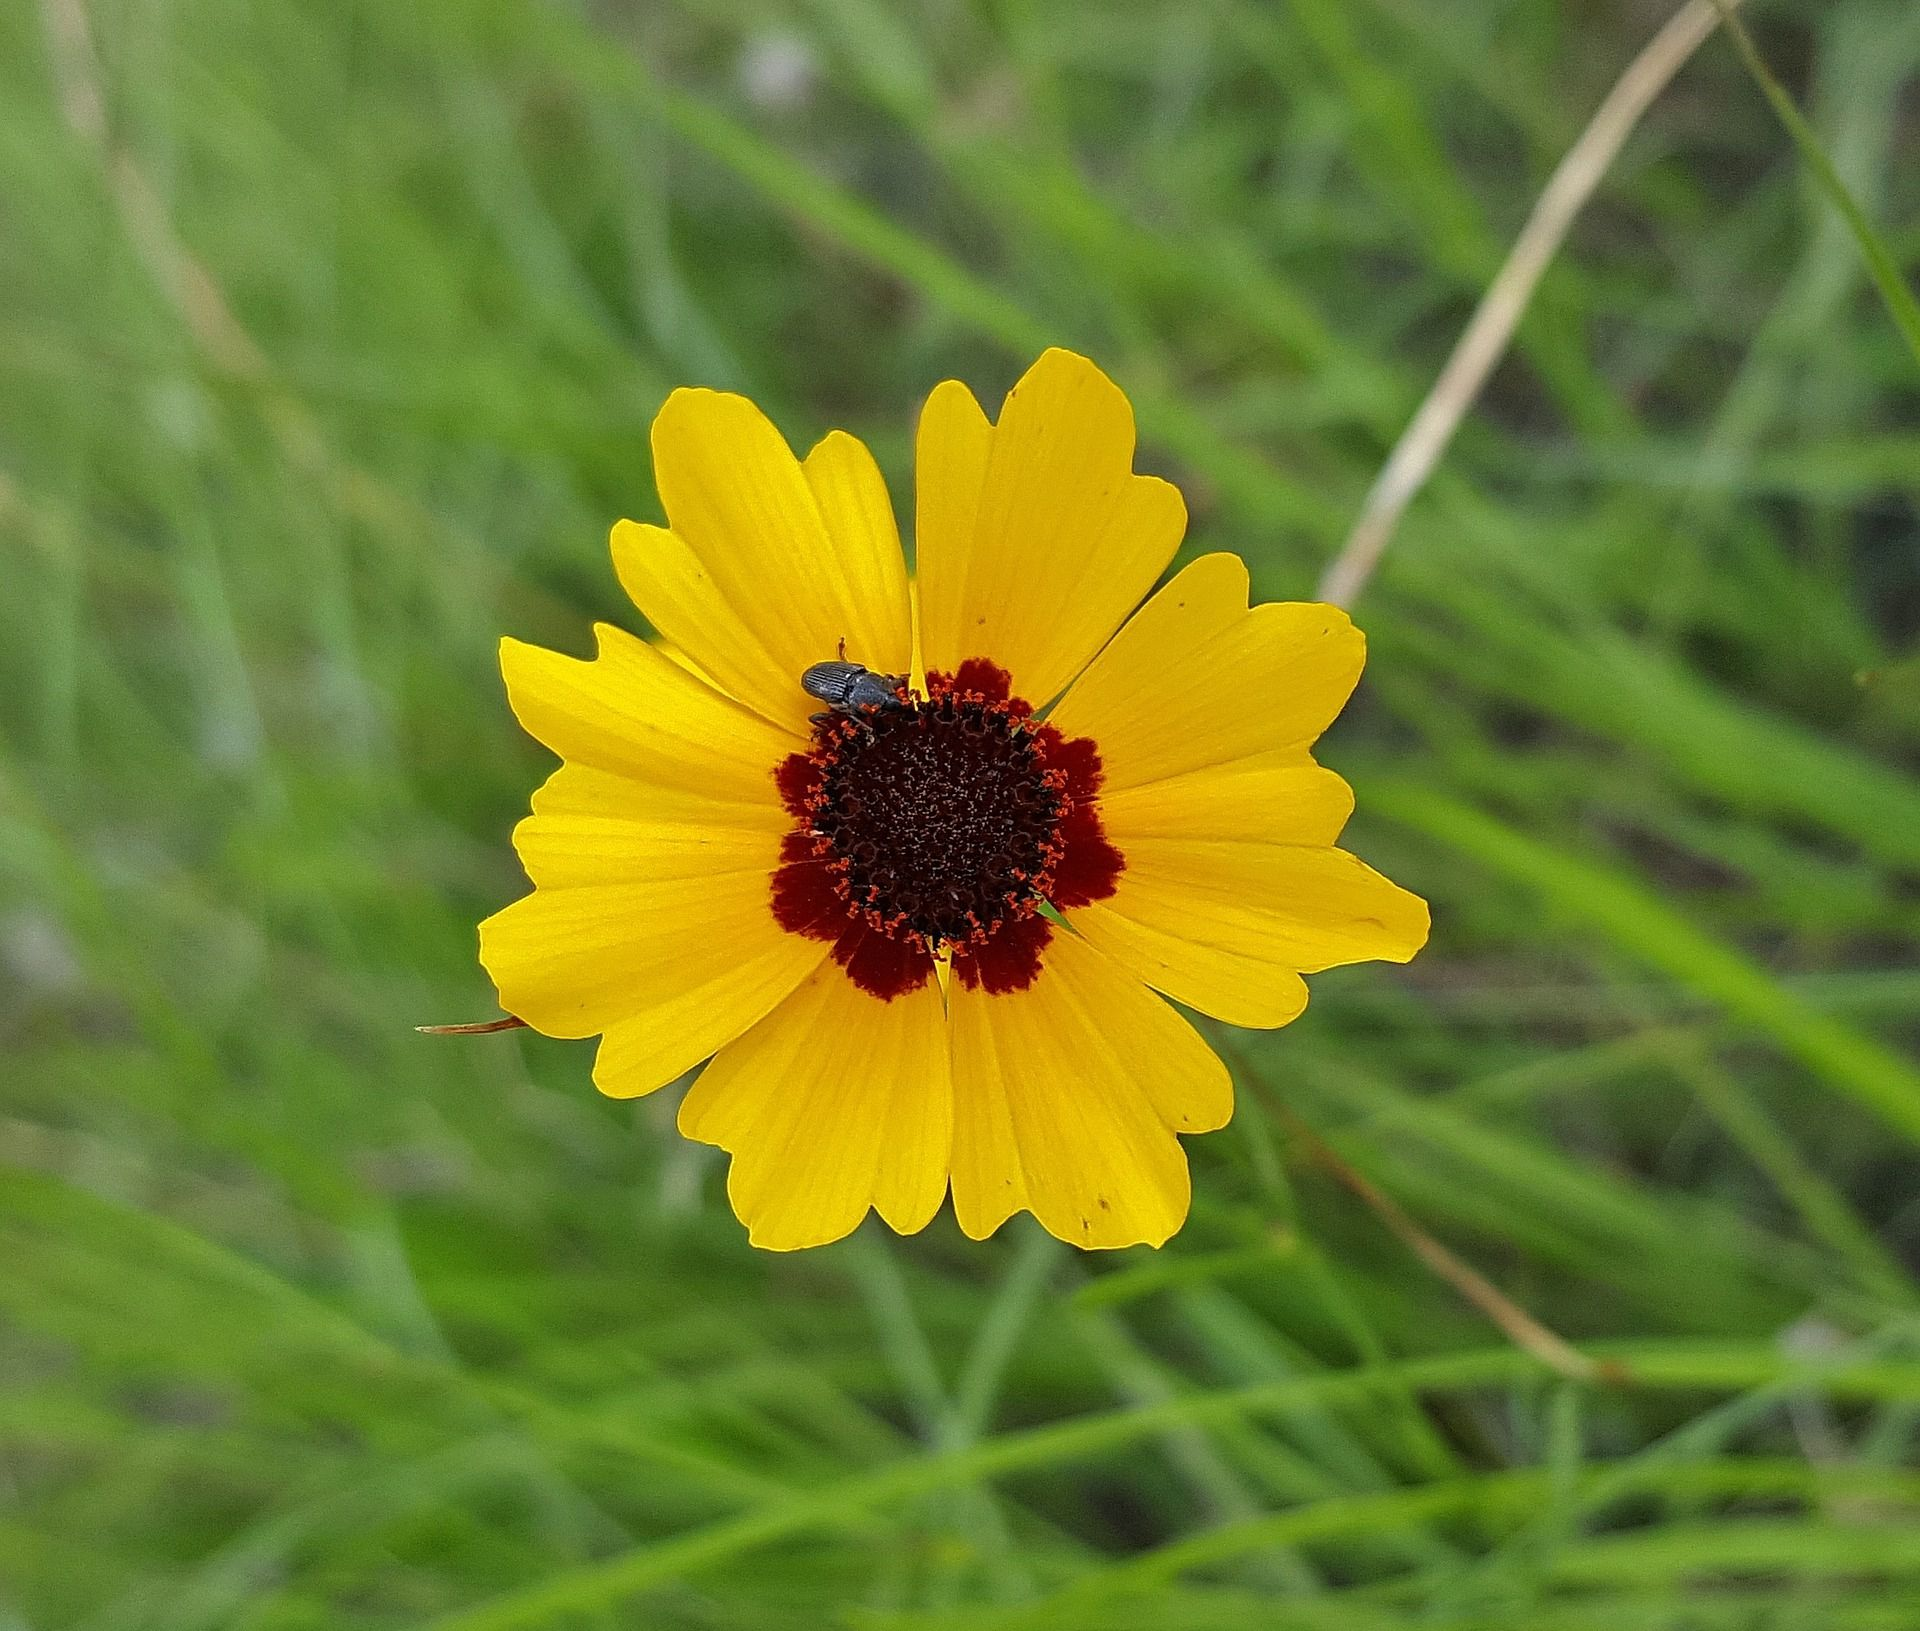 Photo Guide To Identifying Types Of Wildflowers